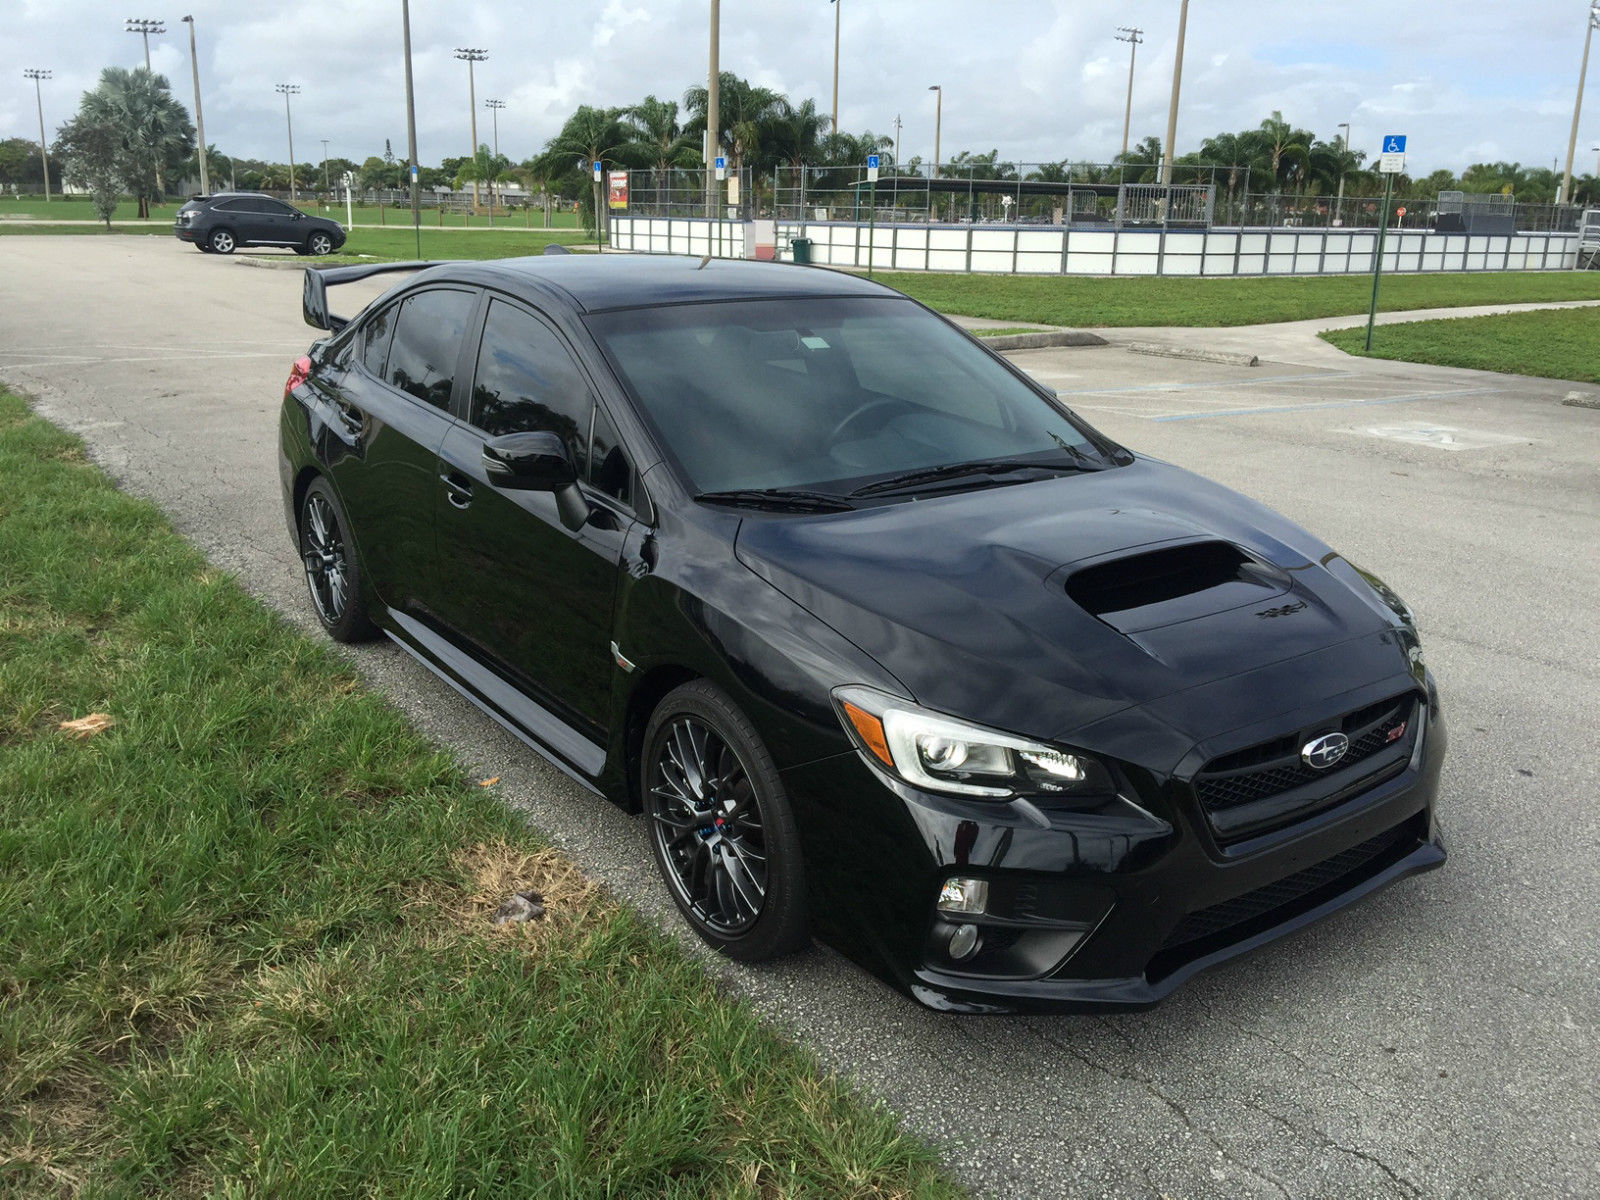 2015 Subaru WRX STI Black Cobb AP, Stage 1+ | Japanese cars for sale